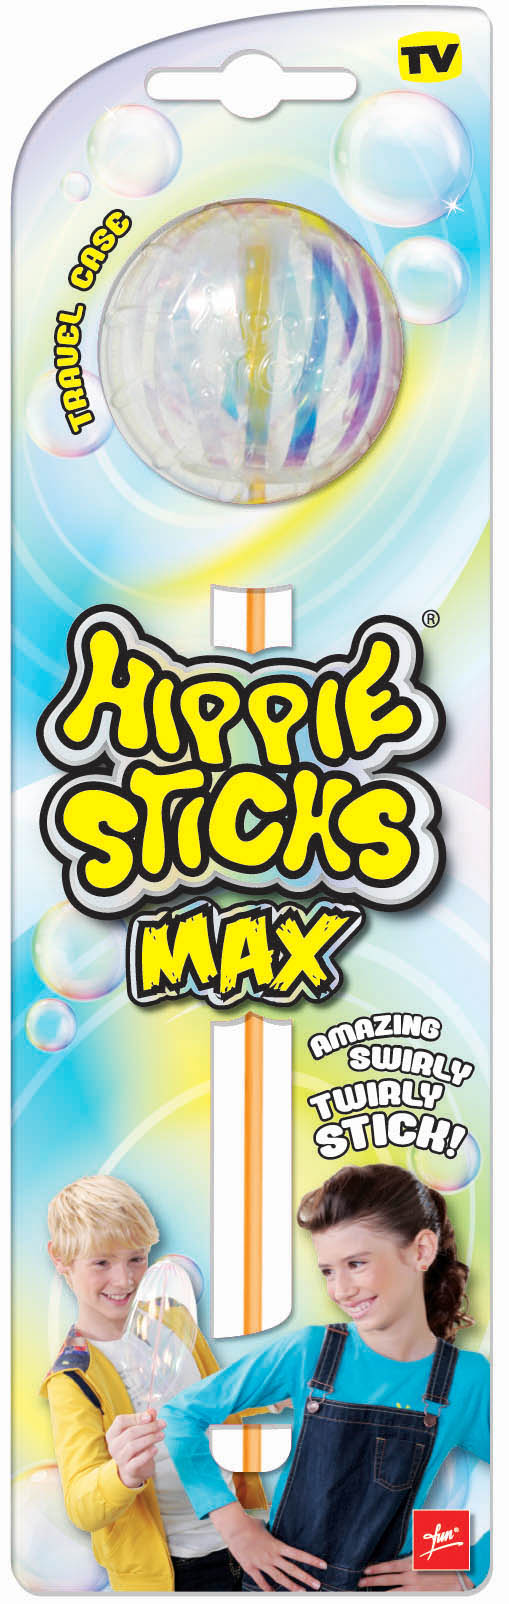 Fun Promotion - Hippie Sticks